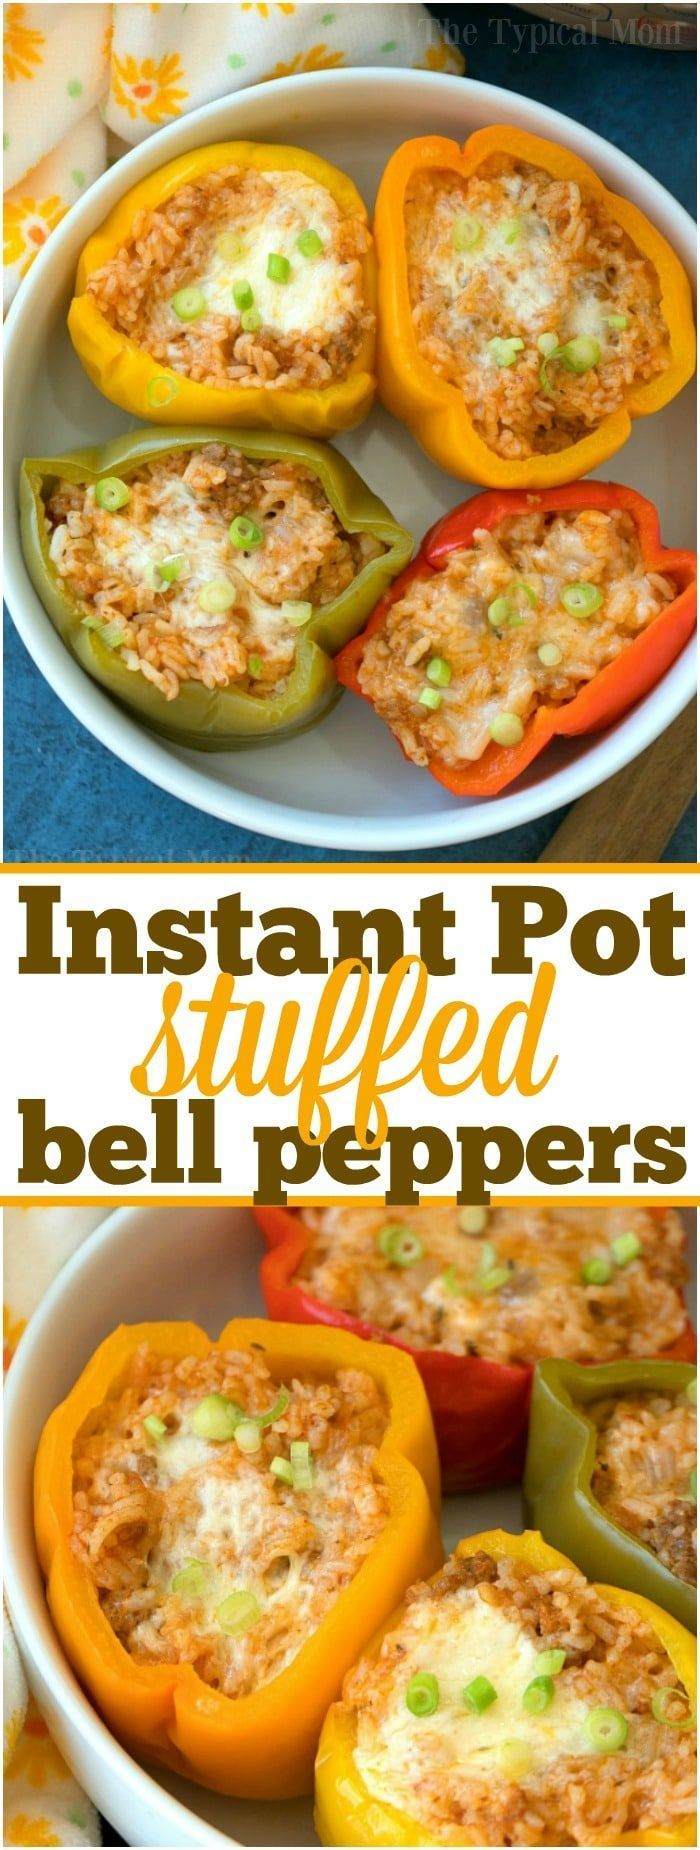 Pressure Cooker These easy Instant Pot stuffed peppers will be your favorite pressure cooker meal Green peppers stuffed with cheesy ground beef and rice theyre packed wit...